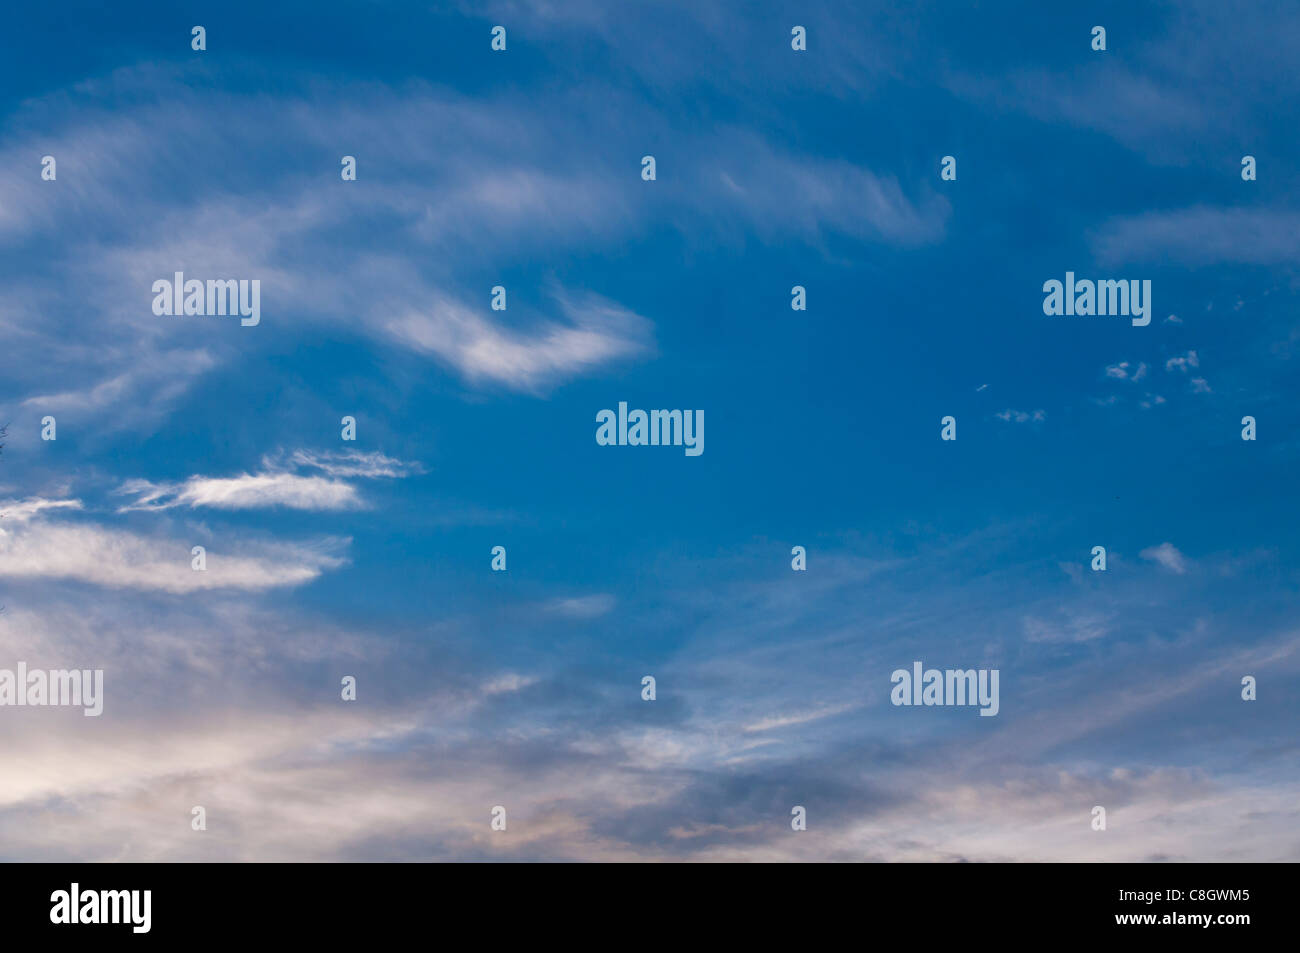 Blue sky with light clouds in the late afternoon - Stock Image